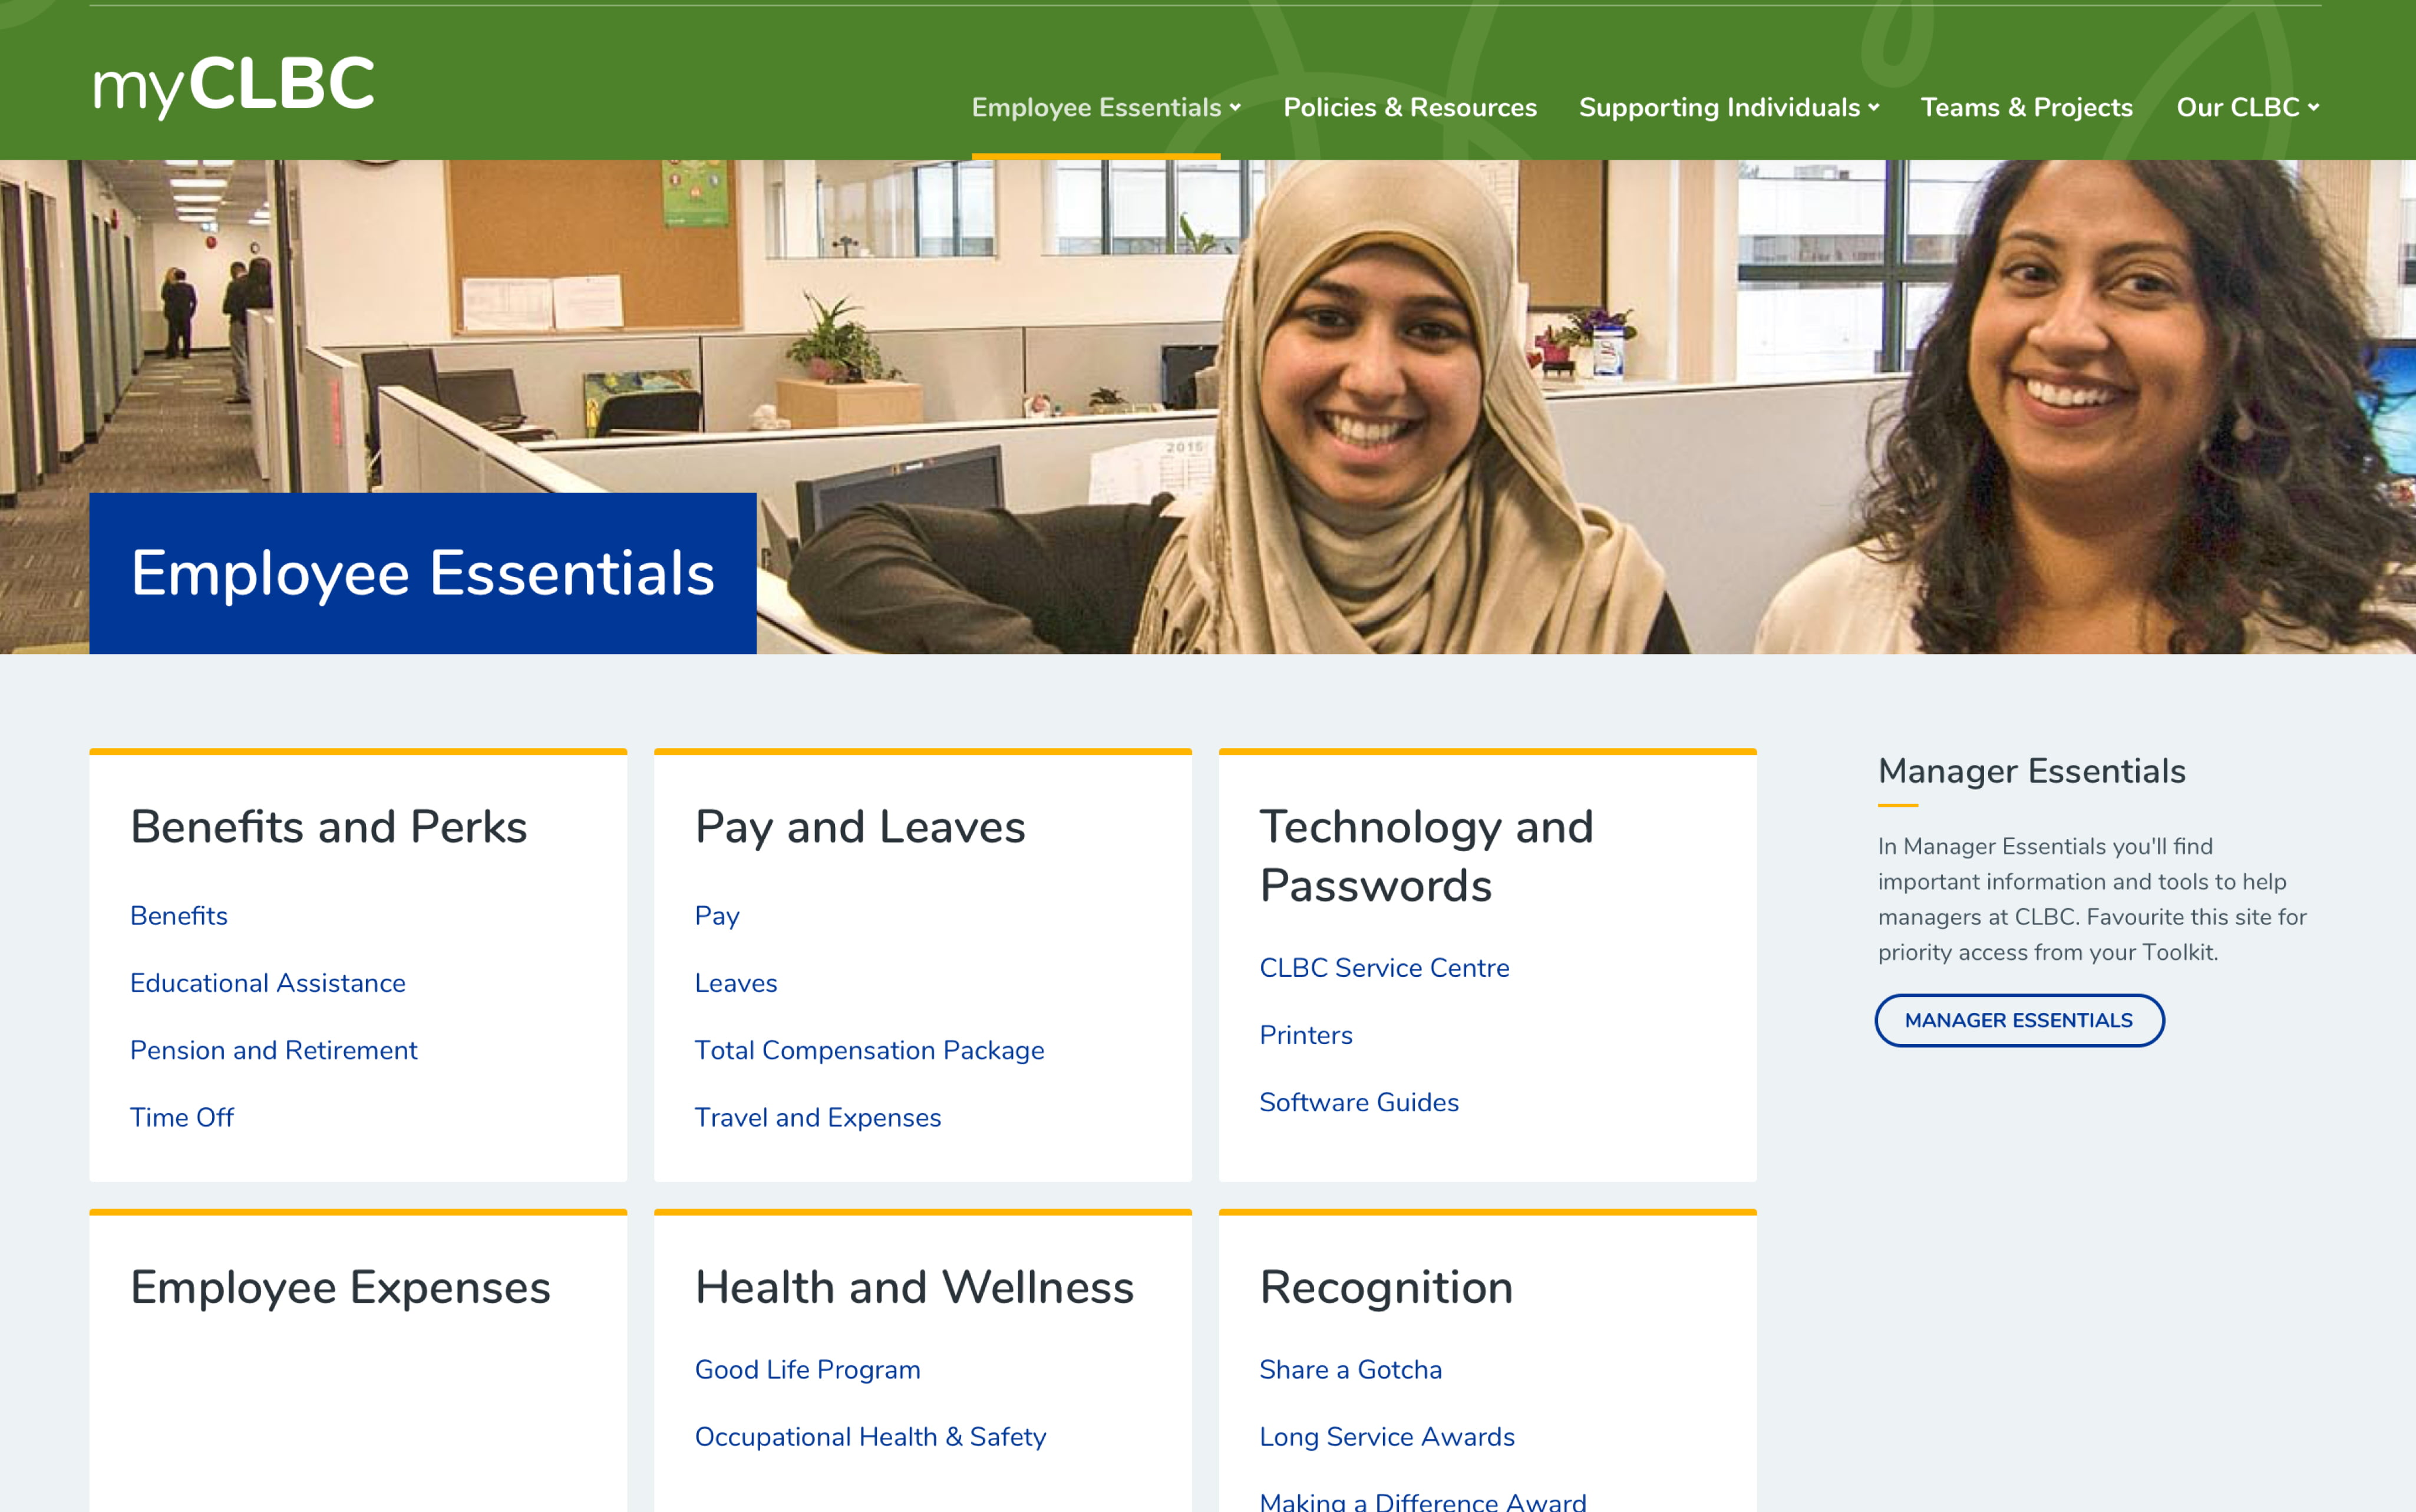 Desktop mock-up of the 'employee essentials' page on CLBC's intranet.